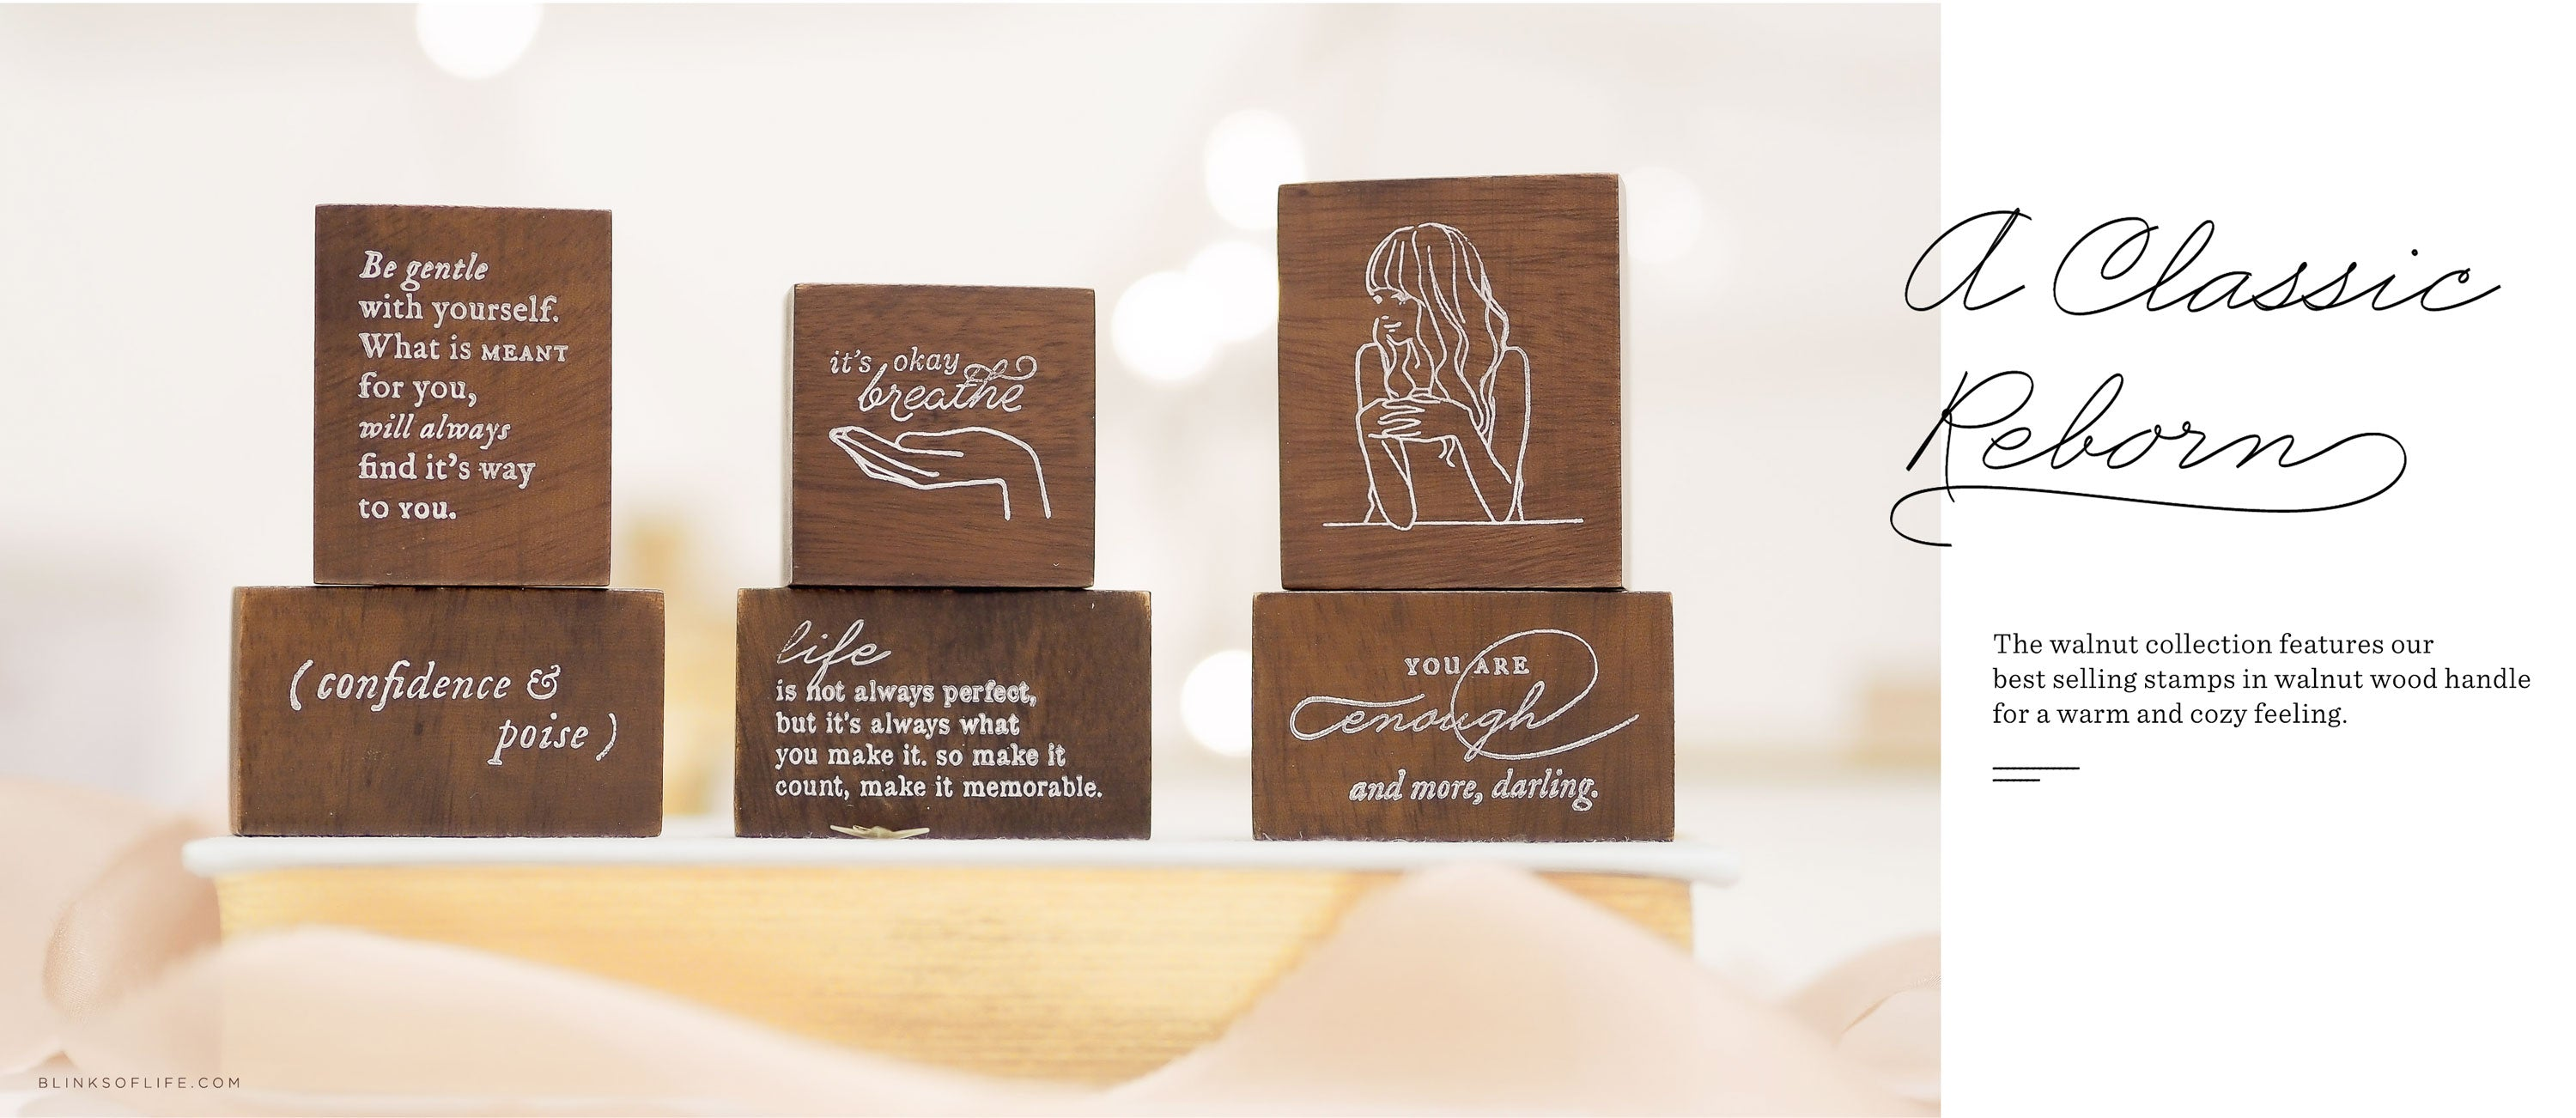 Blinks of Life - Rubber Stamps - Walnut Collection